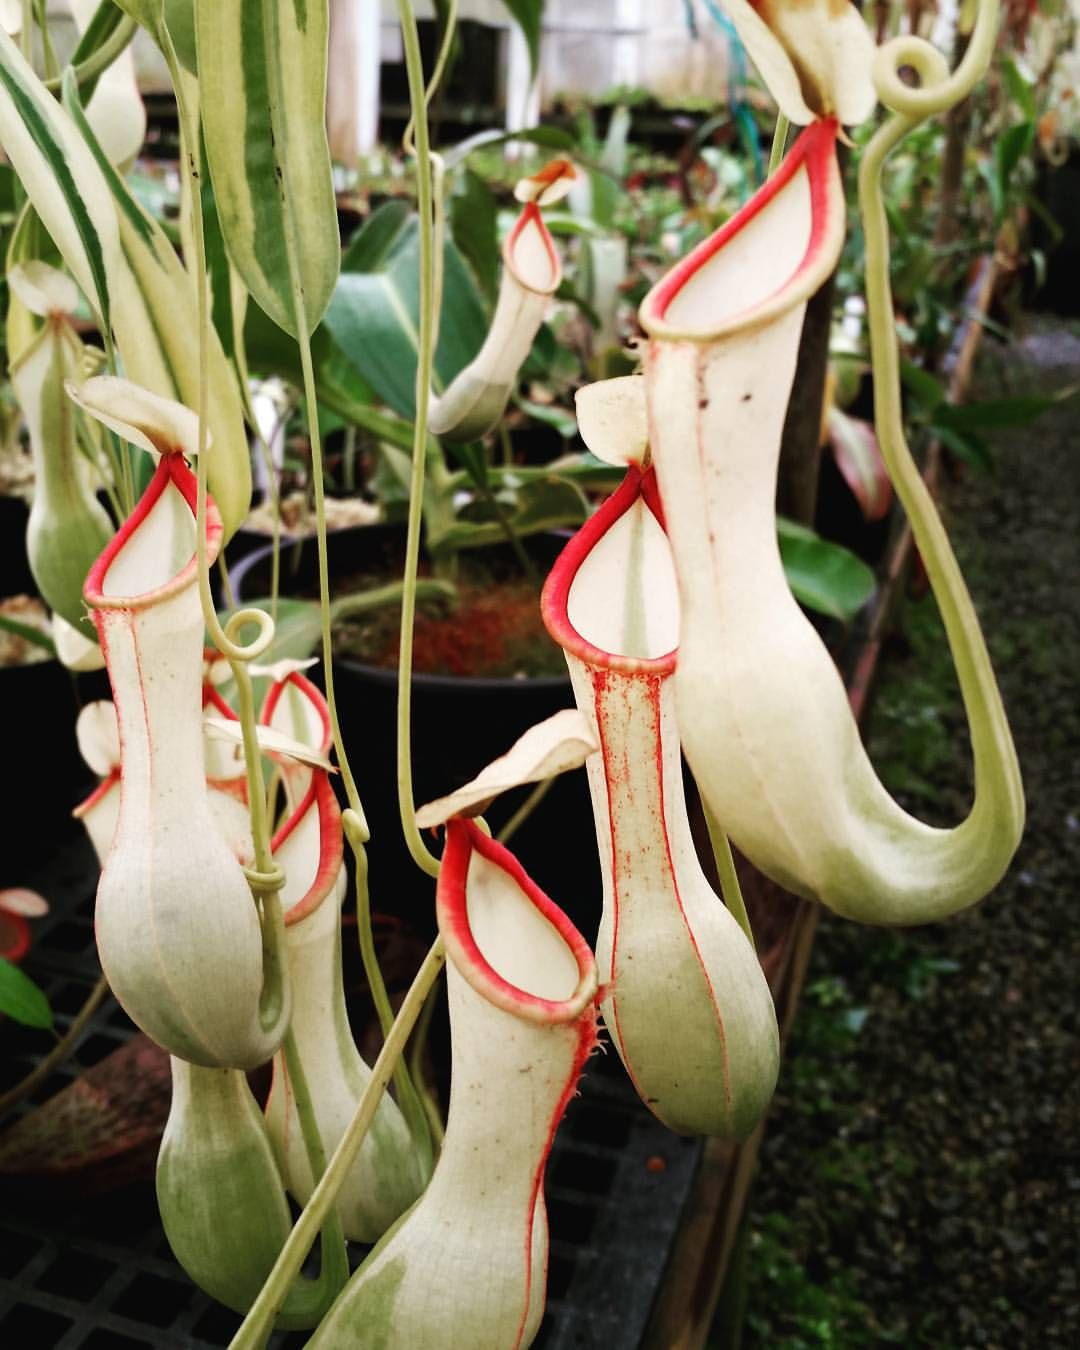 Nepenthes Alata Variegated Rare